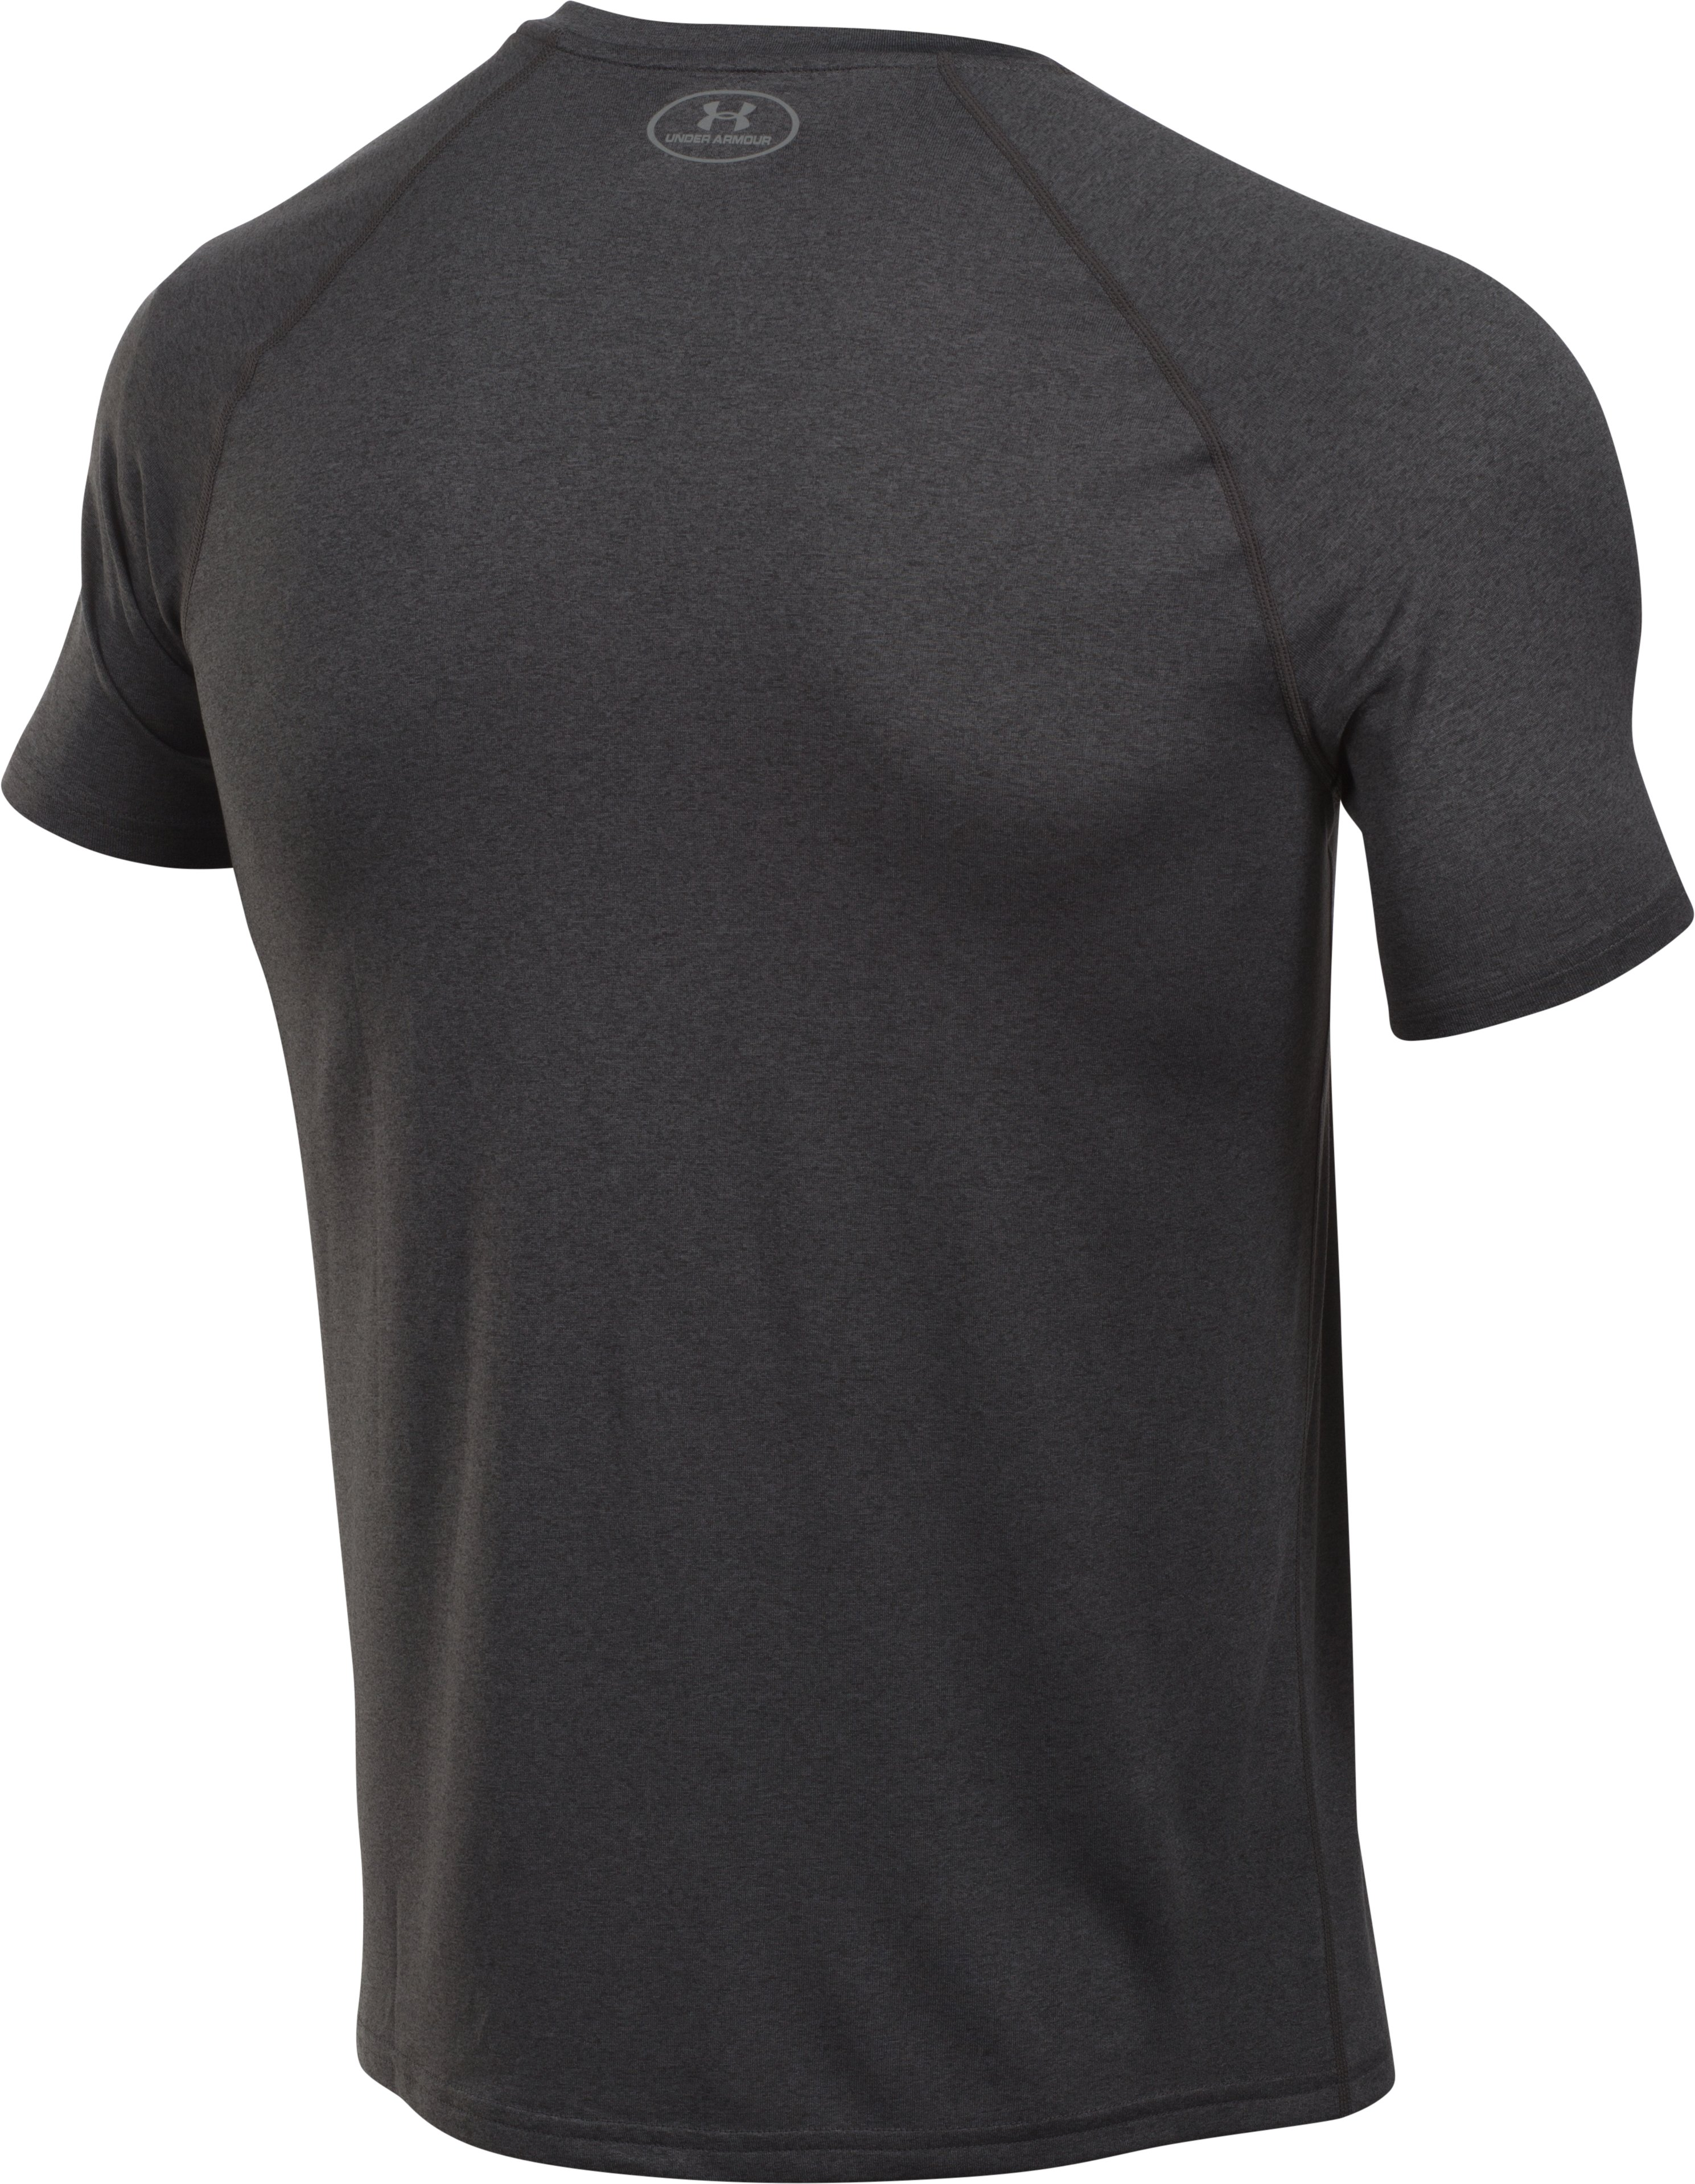 Men's UA Run T-Shirt, Carbon Heather, undefined